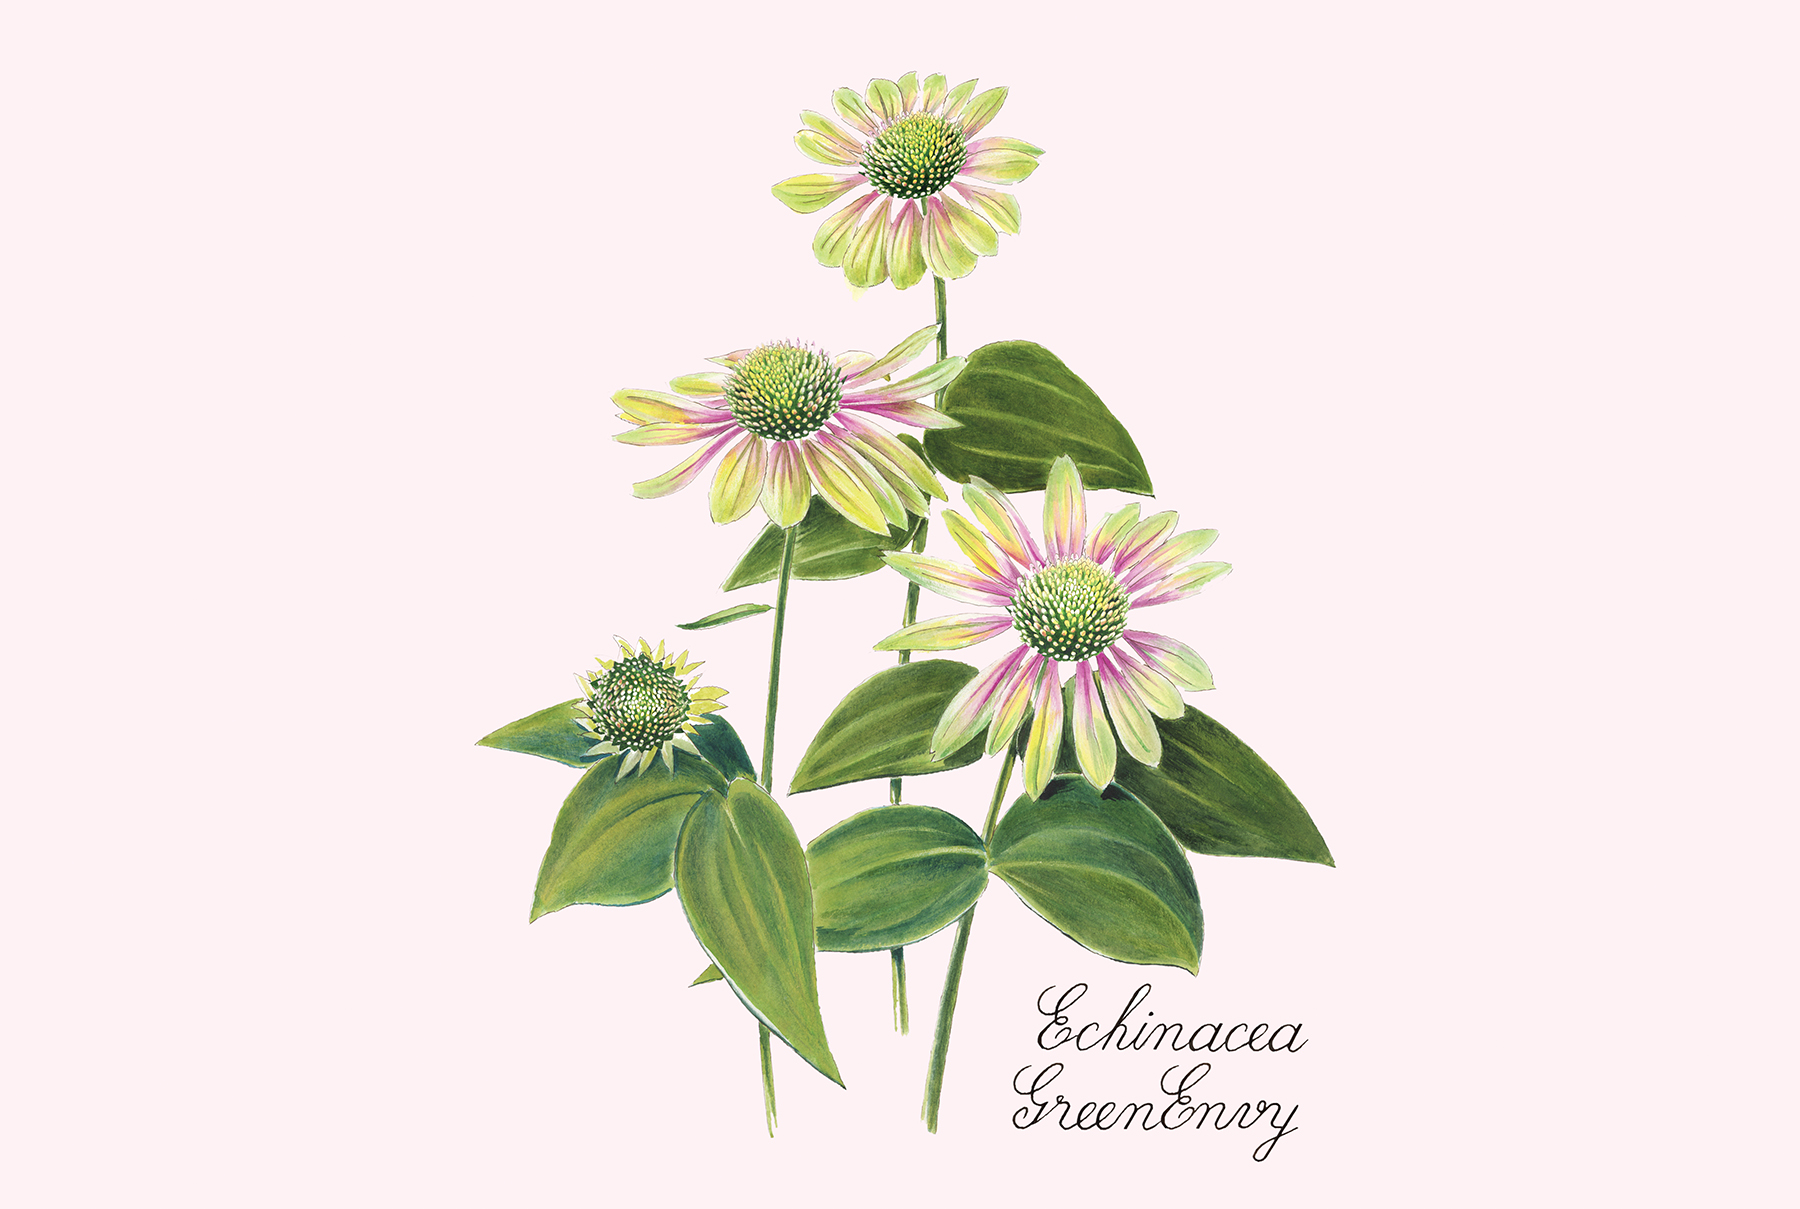 Echinacea GreenEnvy: Protects